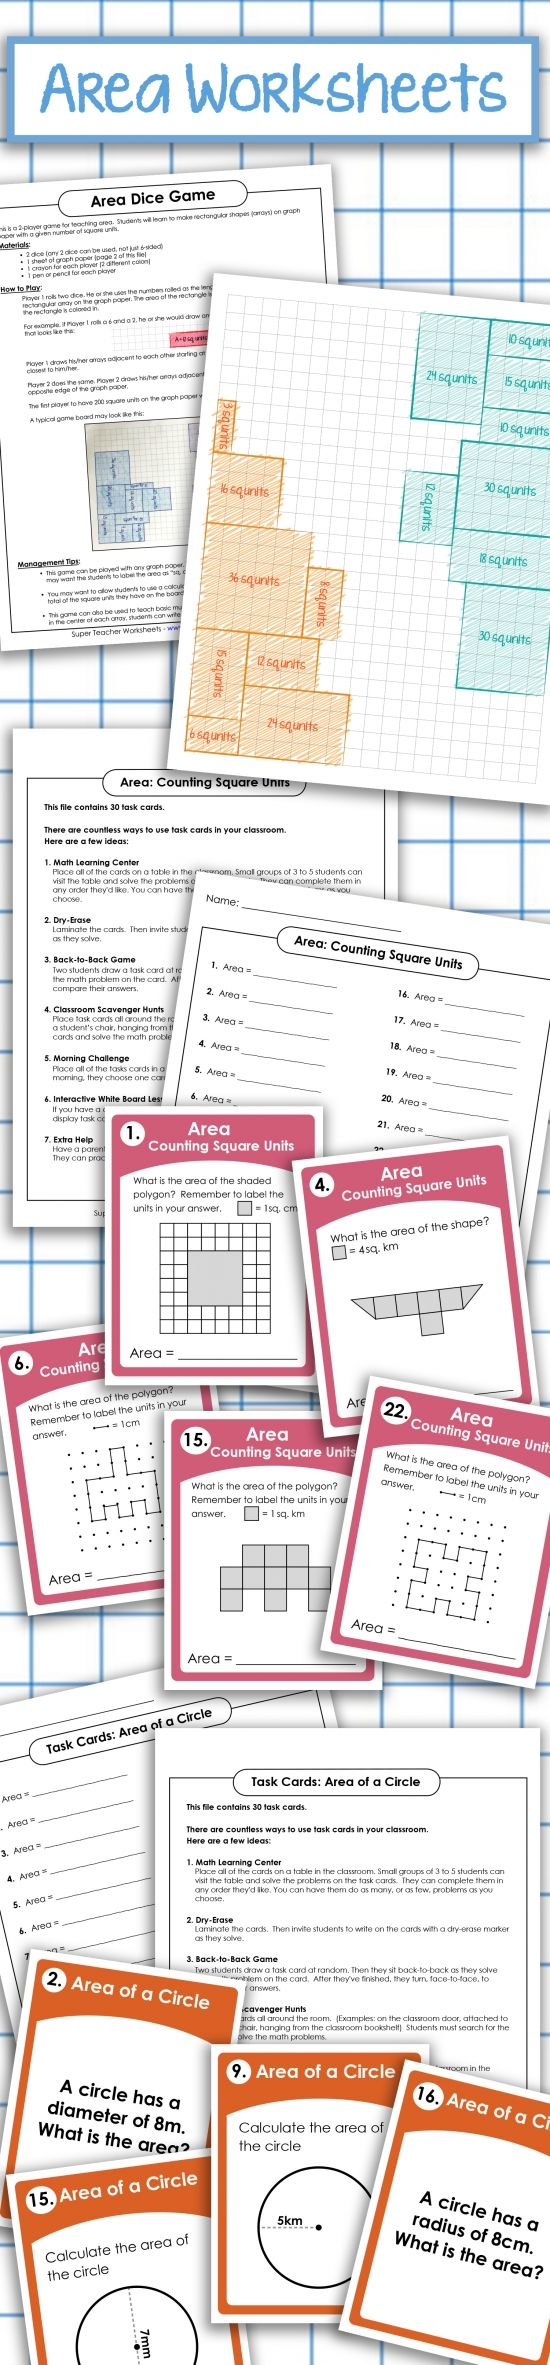 Print Out Area Activities From Superteacherworksheets Our Printable Math Resources Include Basic Ar Super Teacher Worksheets Area Activities Area Worksheets [ 2365 x 550 Pixel ]